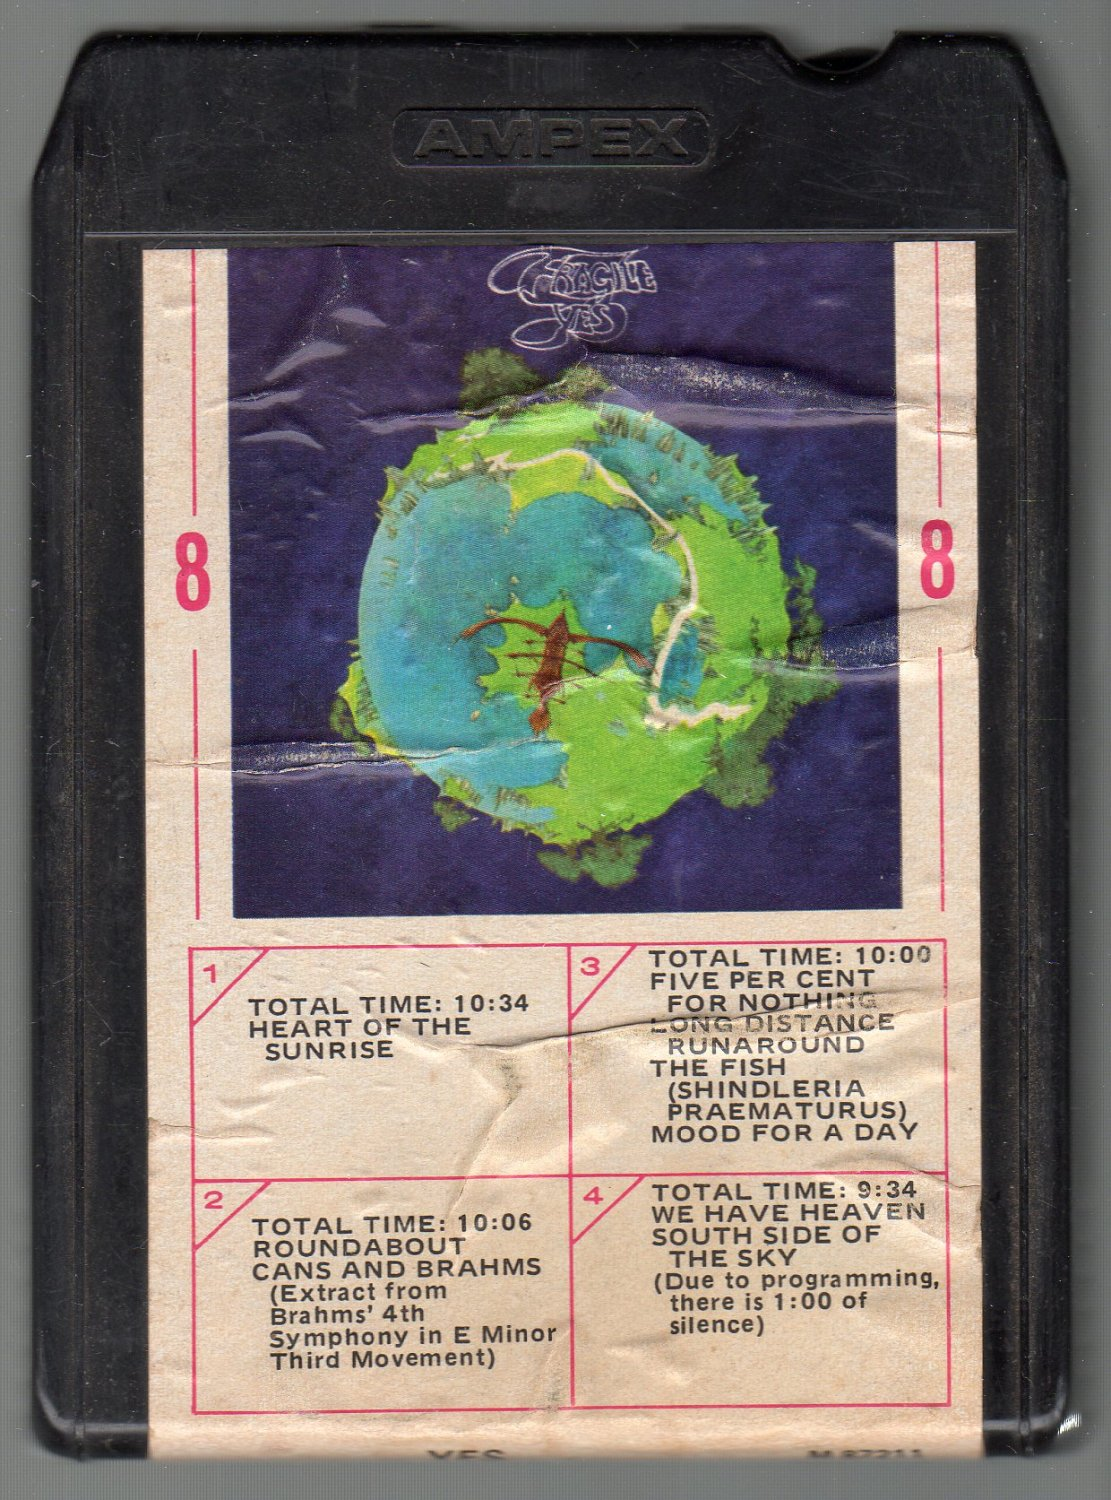 Yes - Fragile Ampex 8-track tape